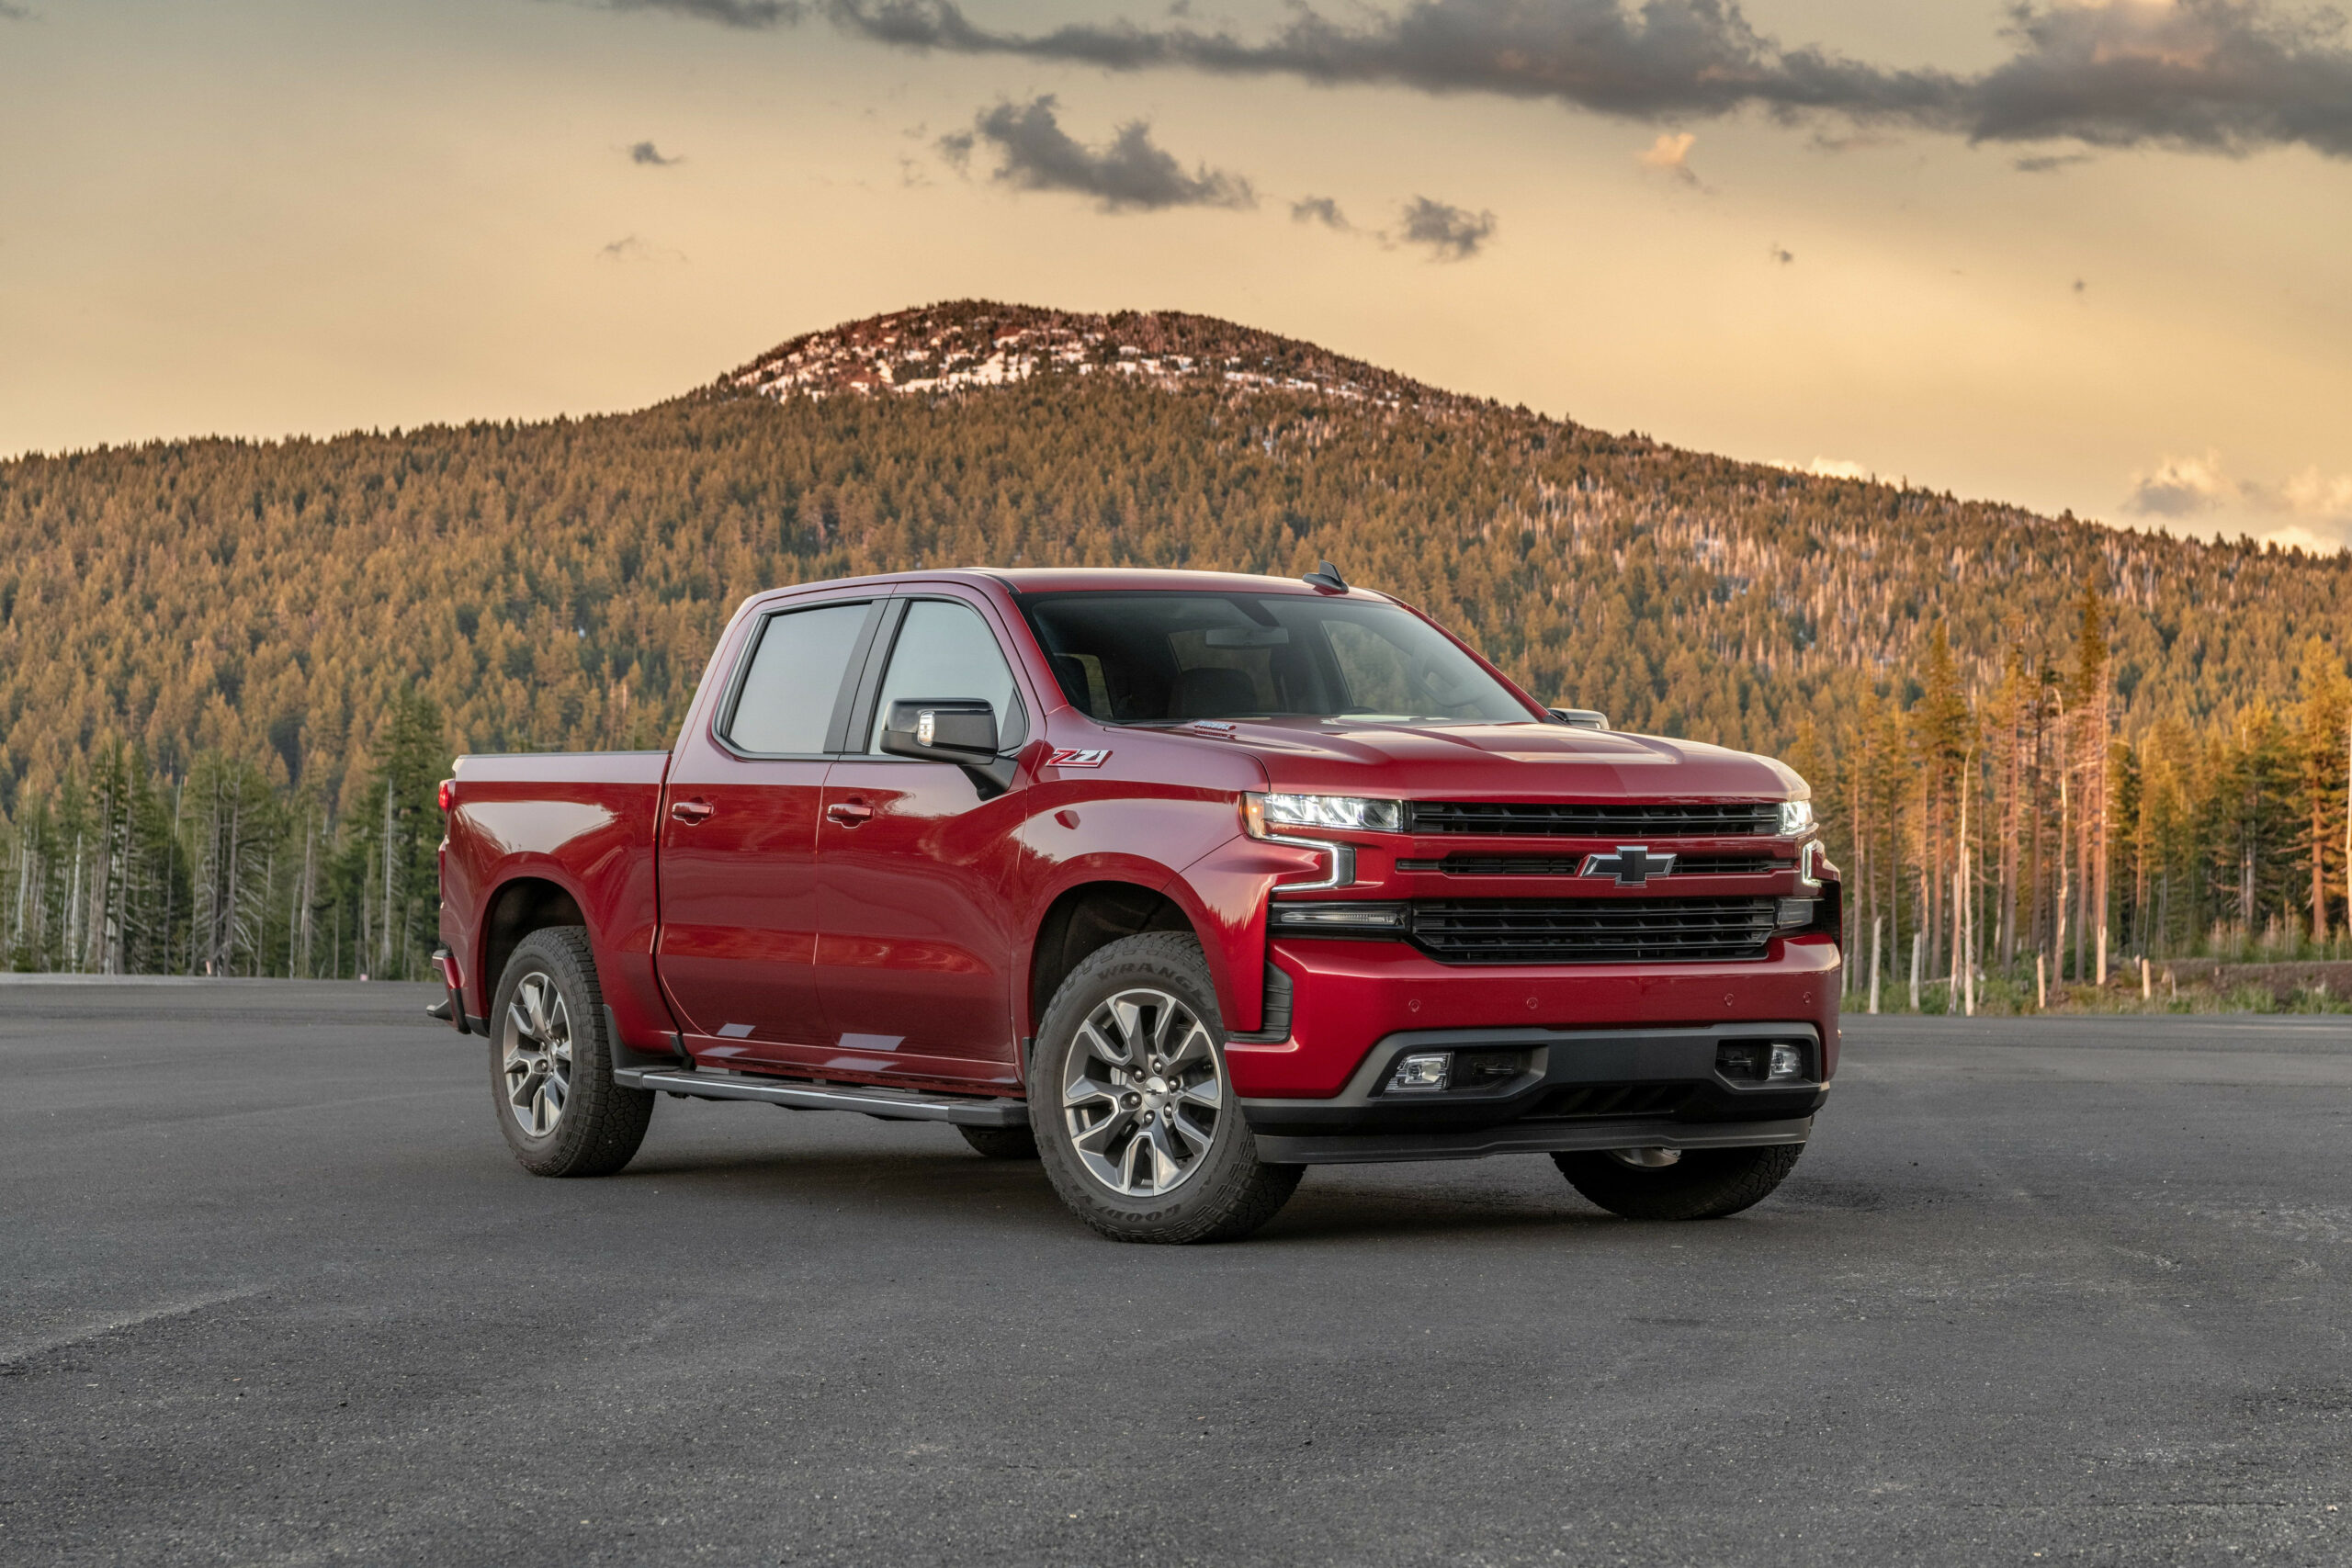 12 Chevy Silverado 12 Review, Pricing, and Specs - 2020 chevrolet rst truck